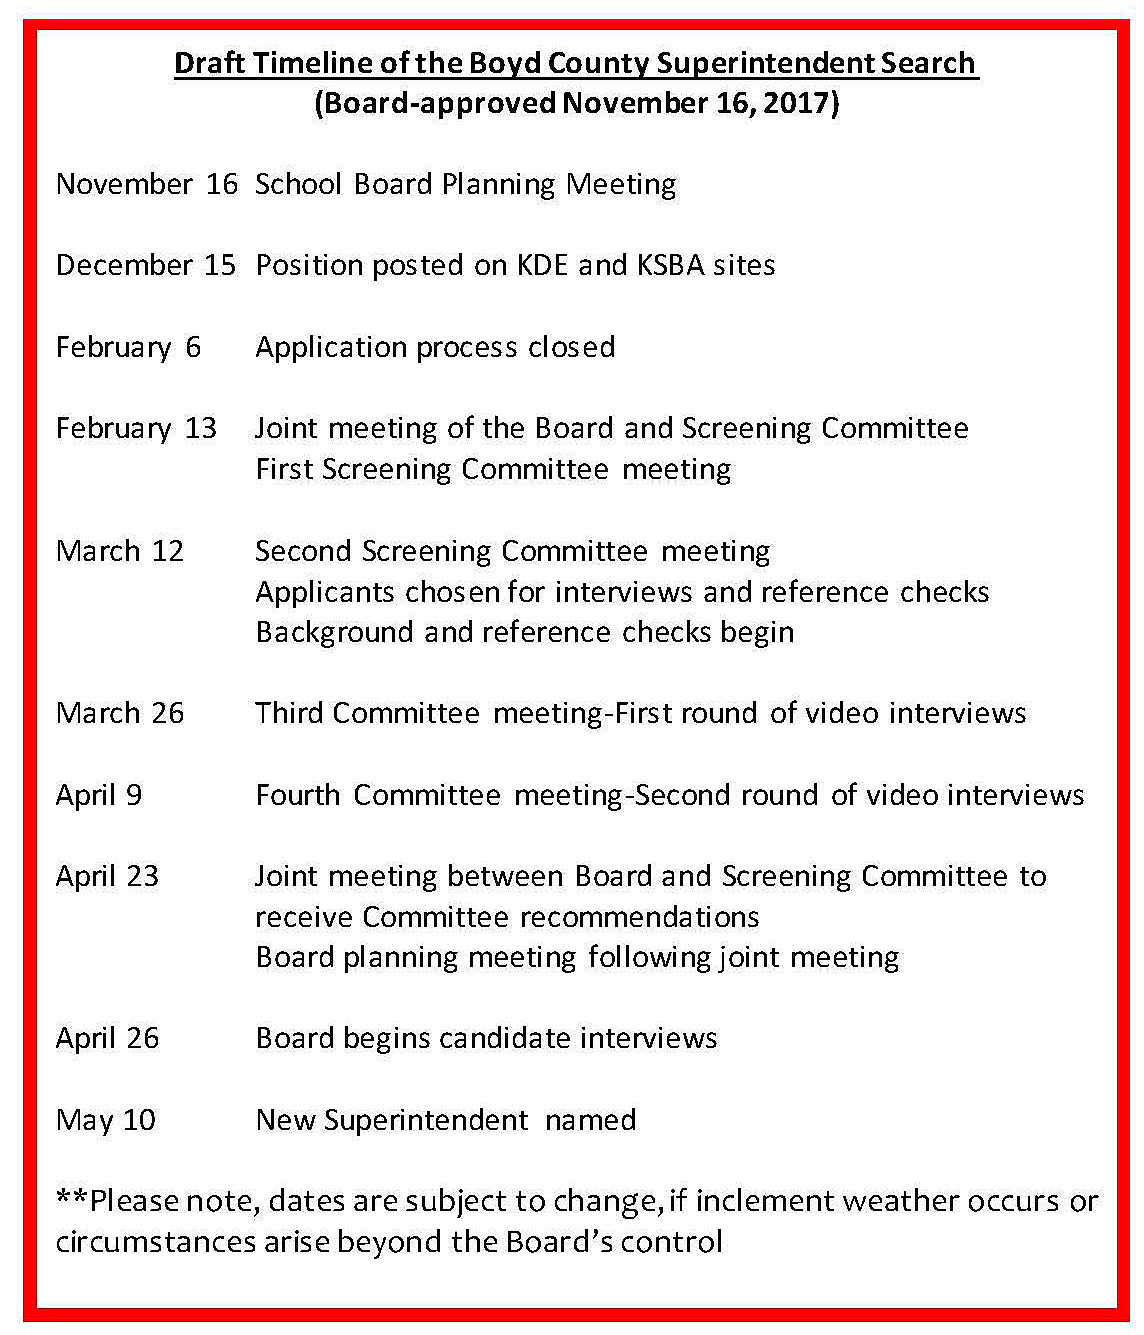 Timeline for Superintendent search.